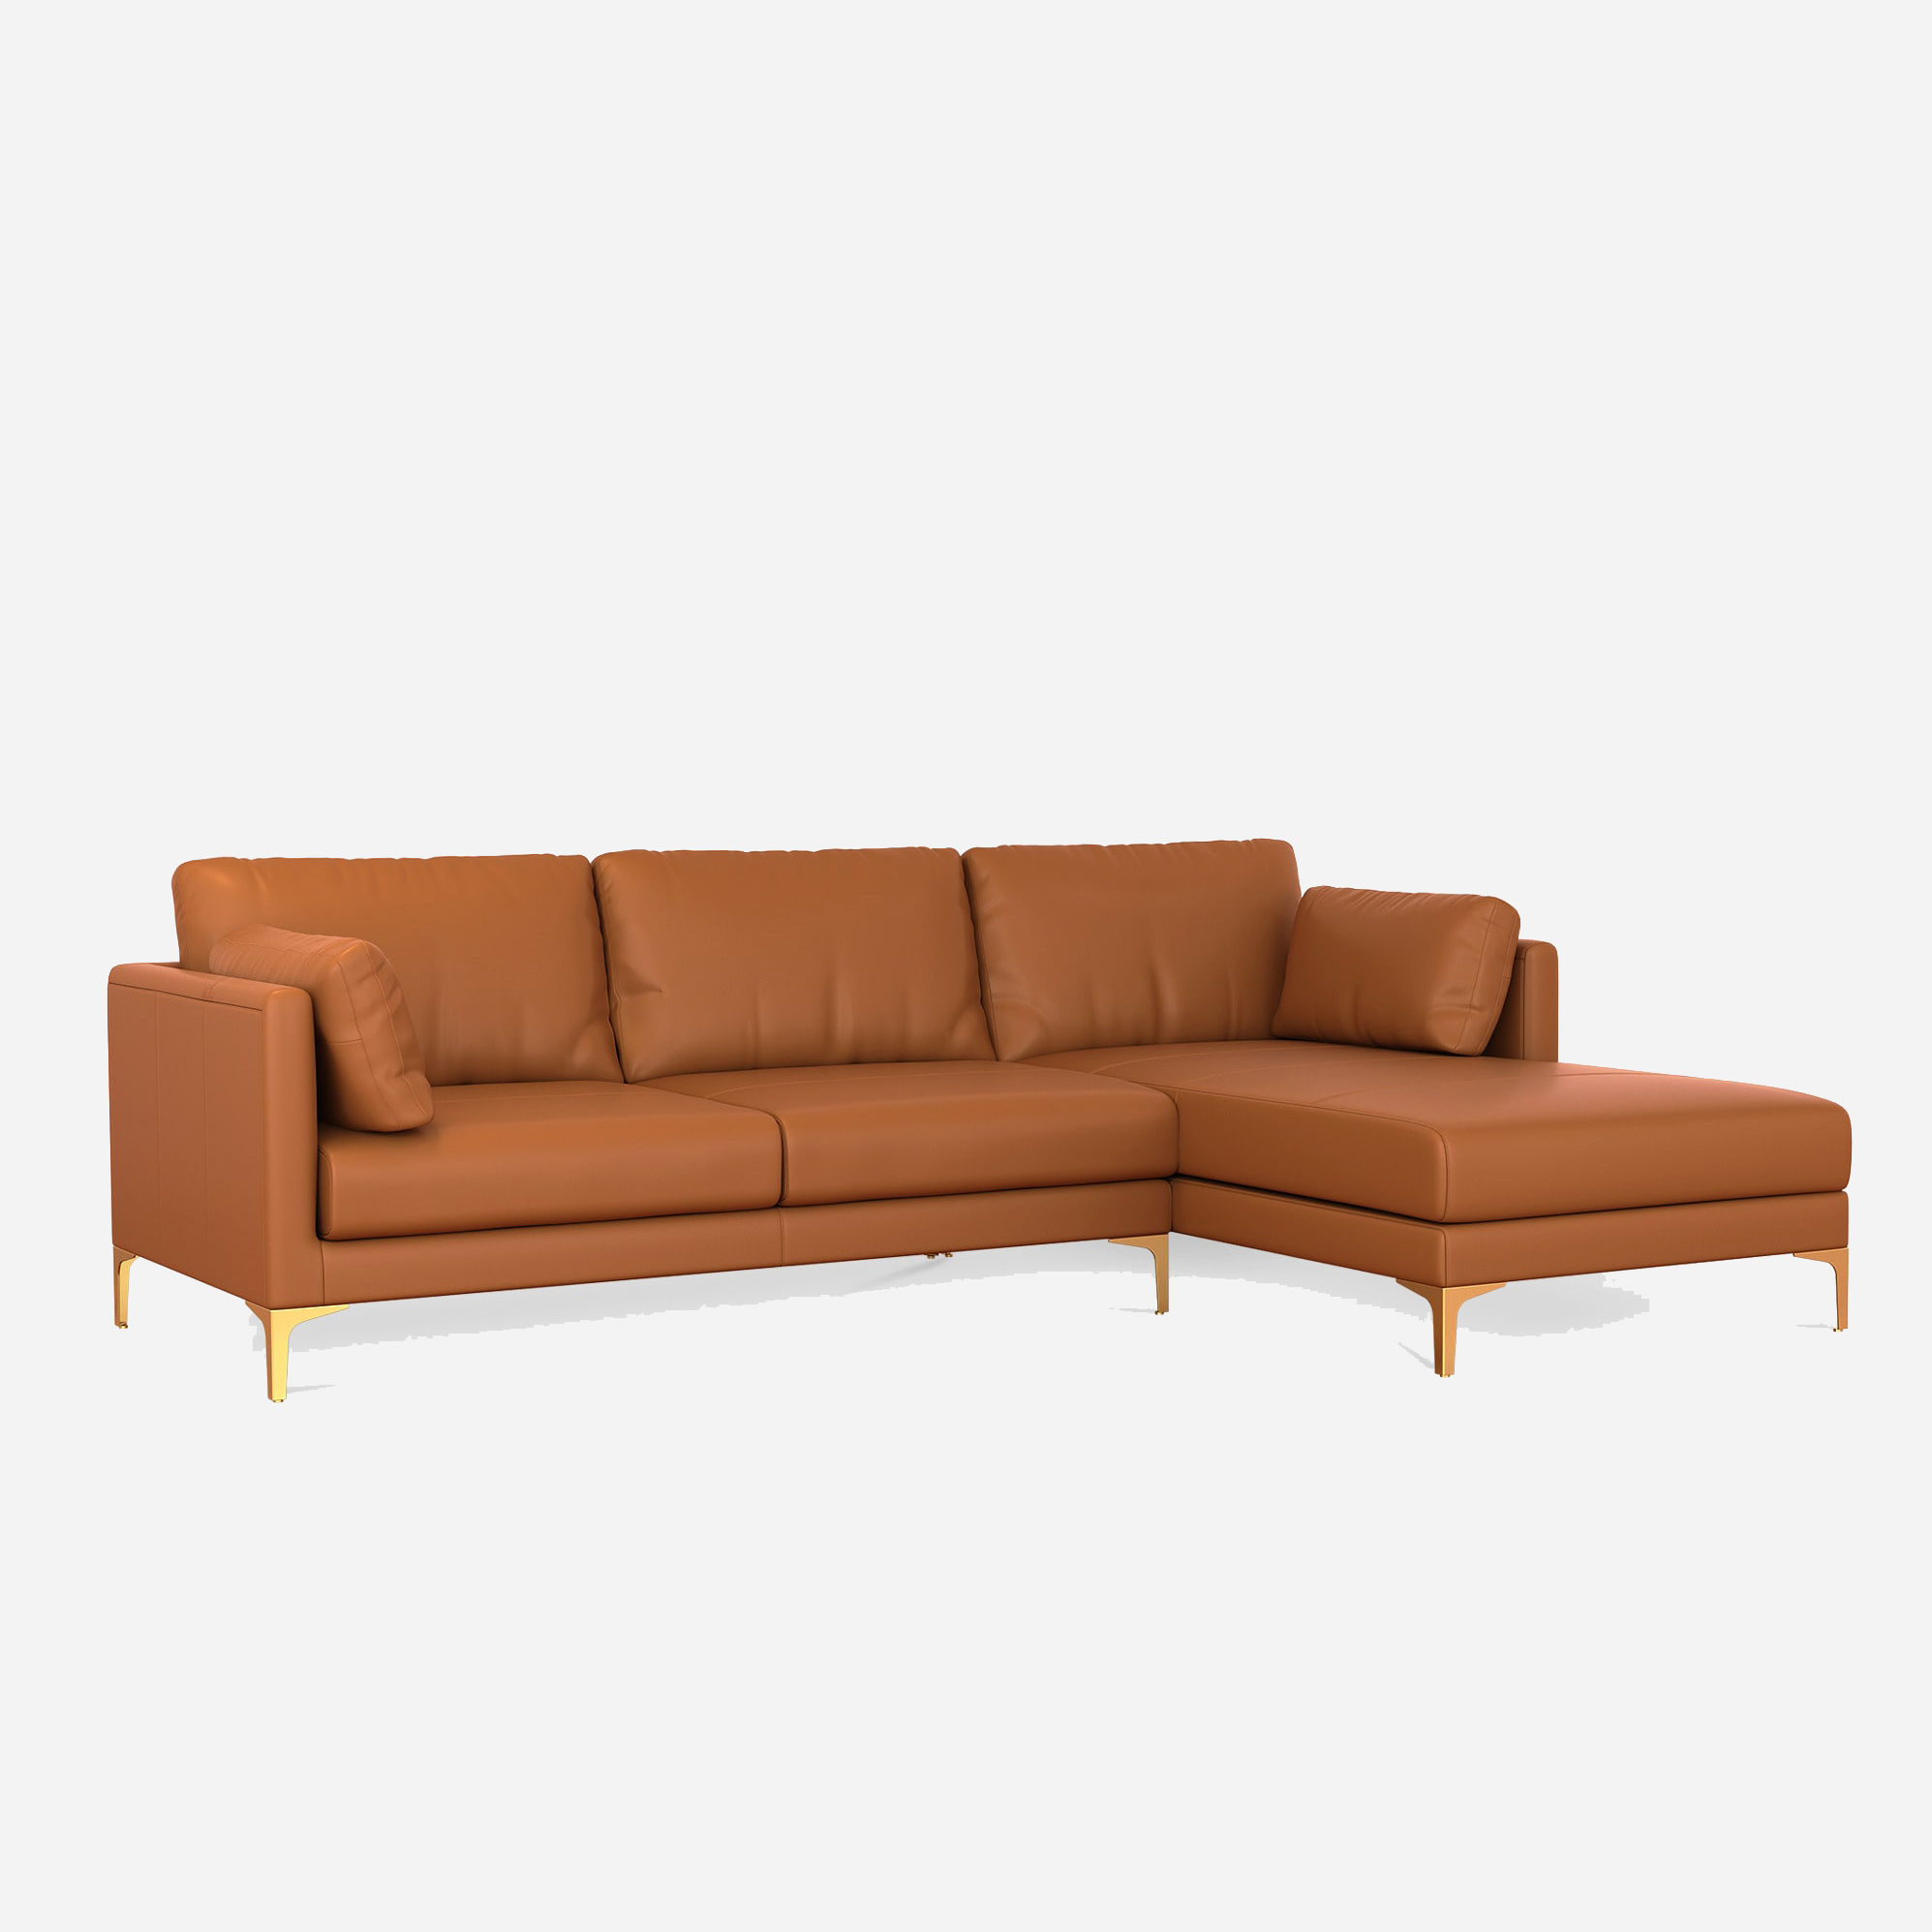 10 Best Modern Leather Sofas 2021 Apartment Therapy